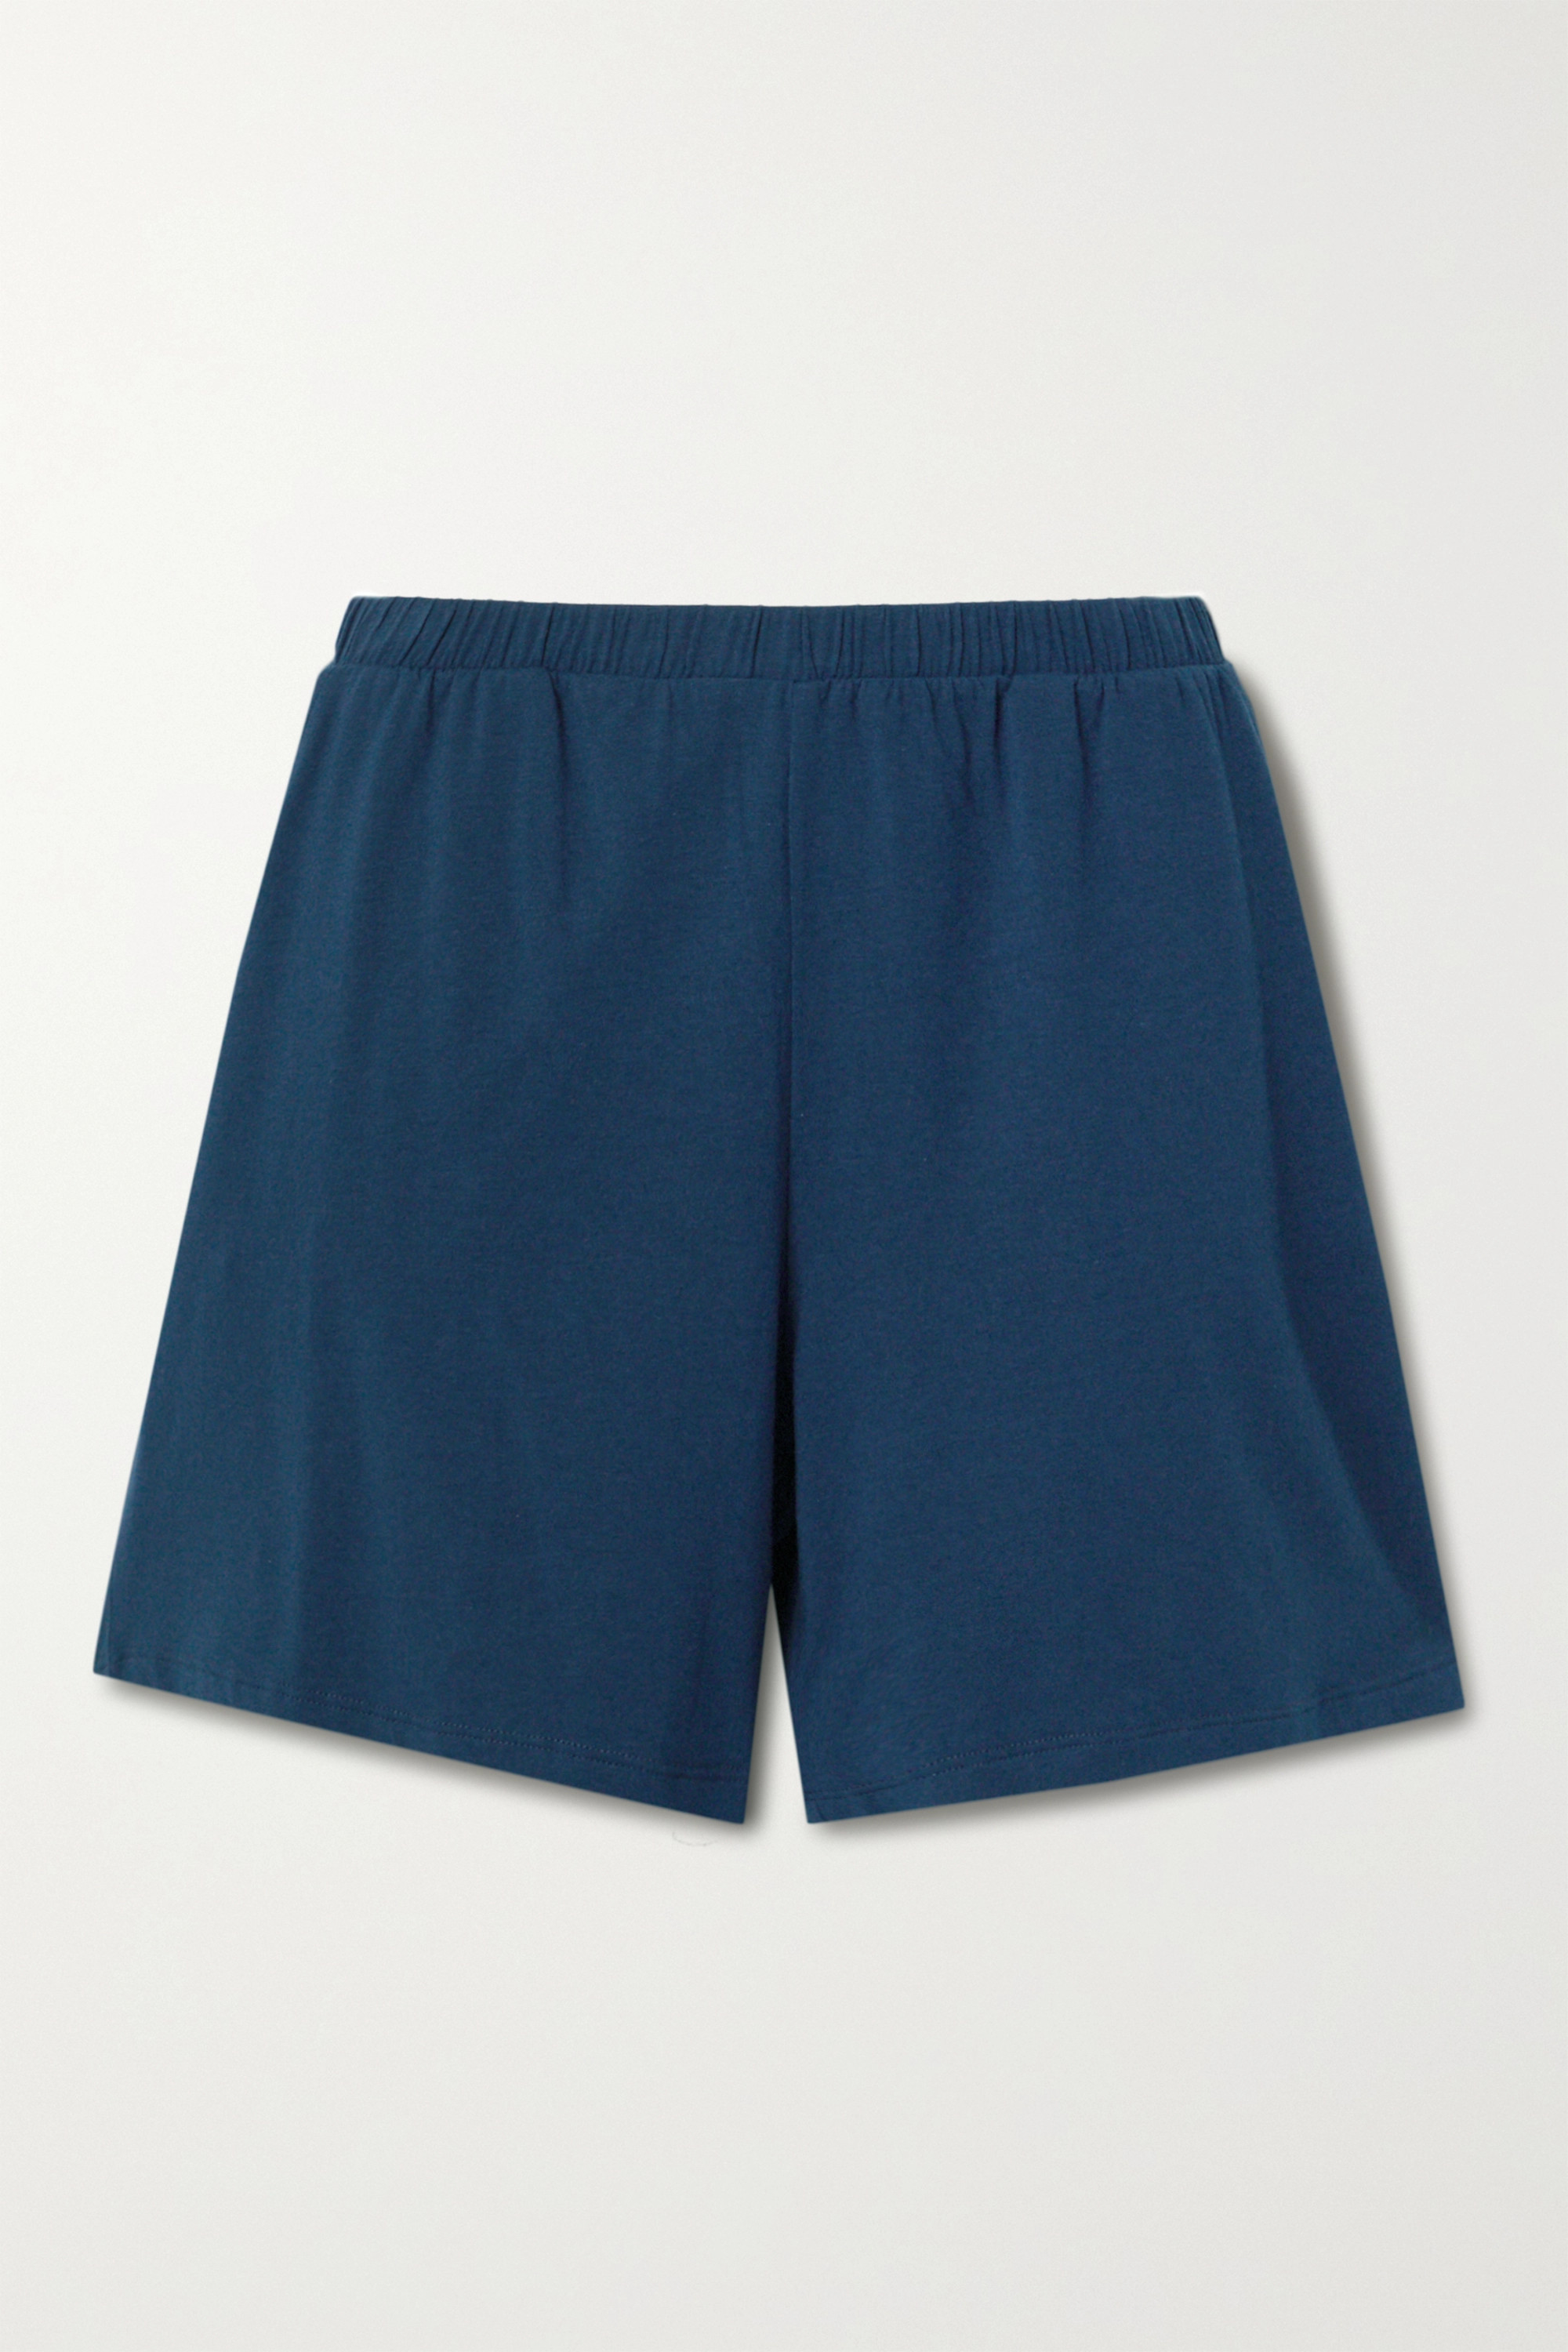 Skin Monika stretch-jersey shorts